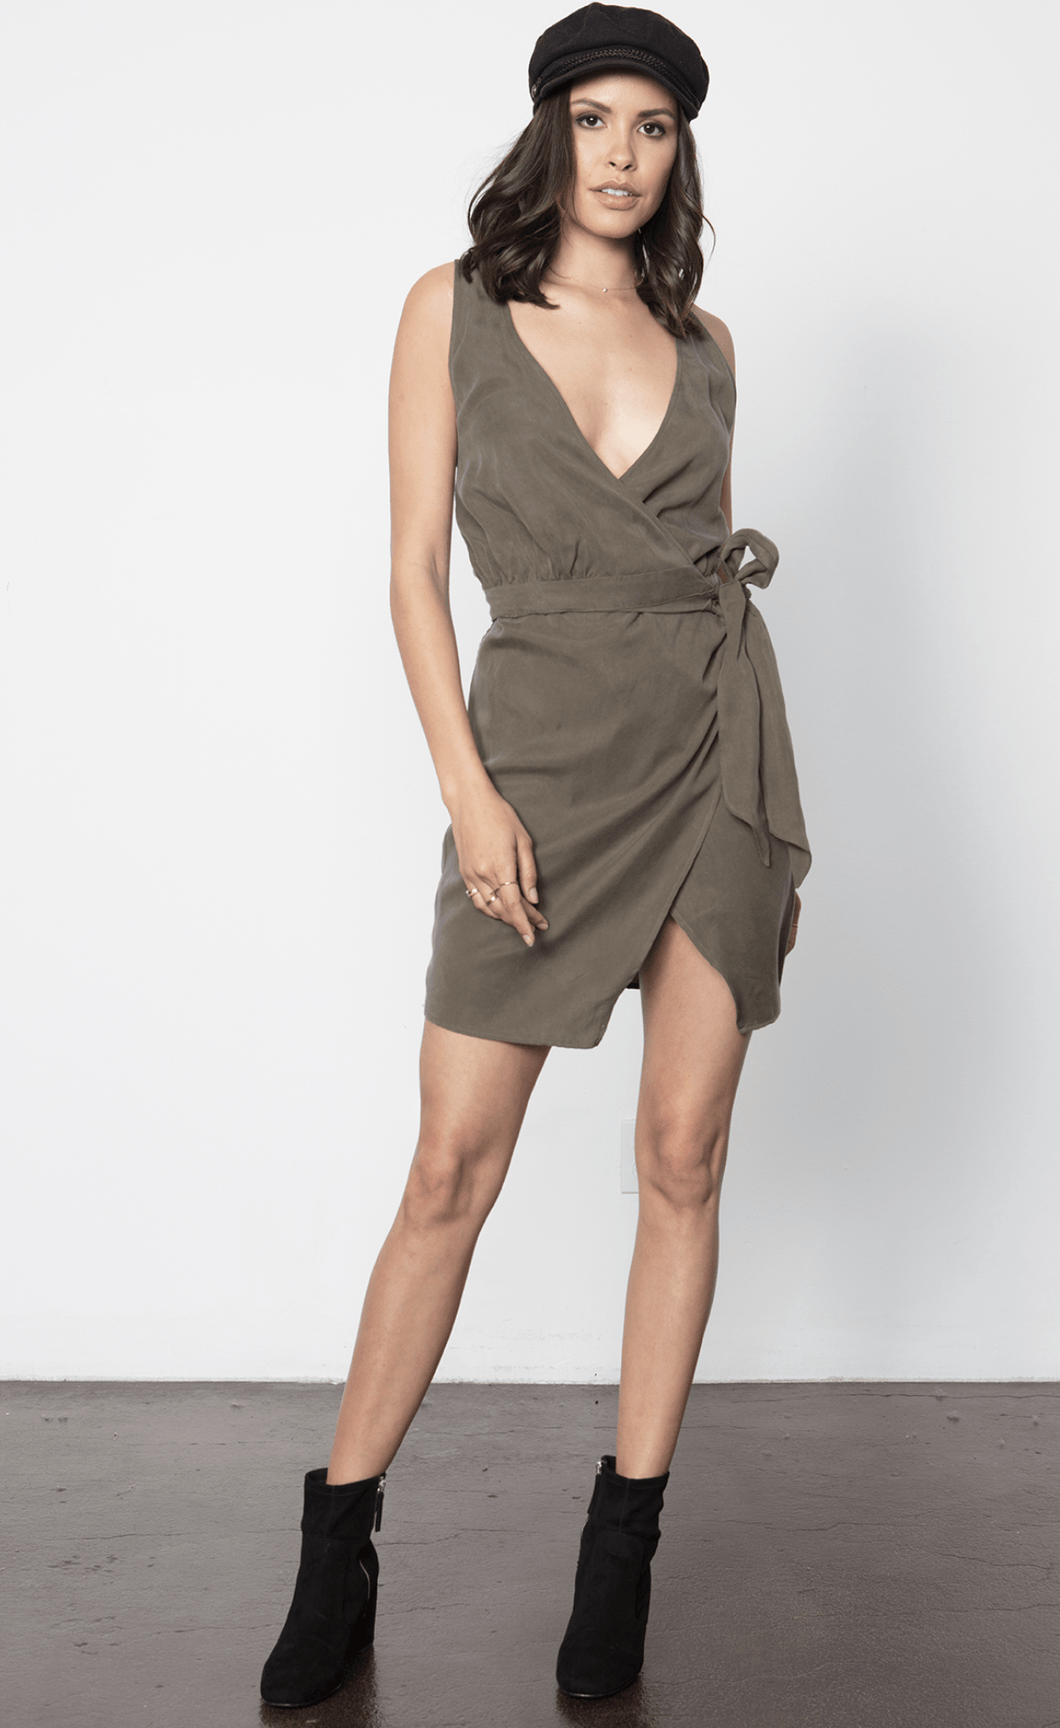 Stillwater Knotty Wrap Dress in Olive